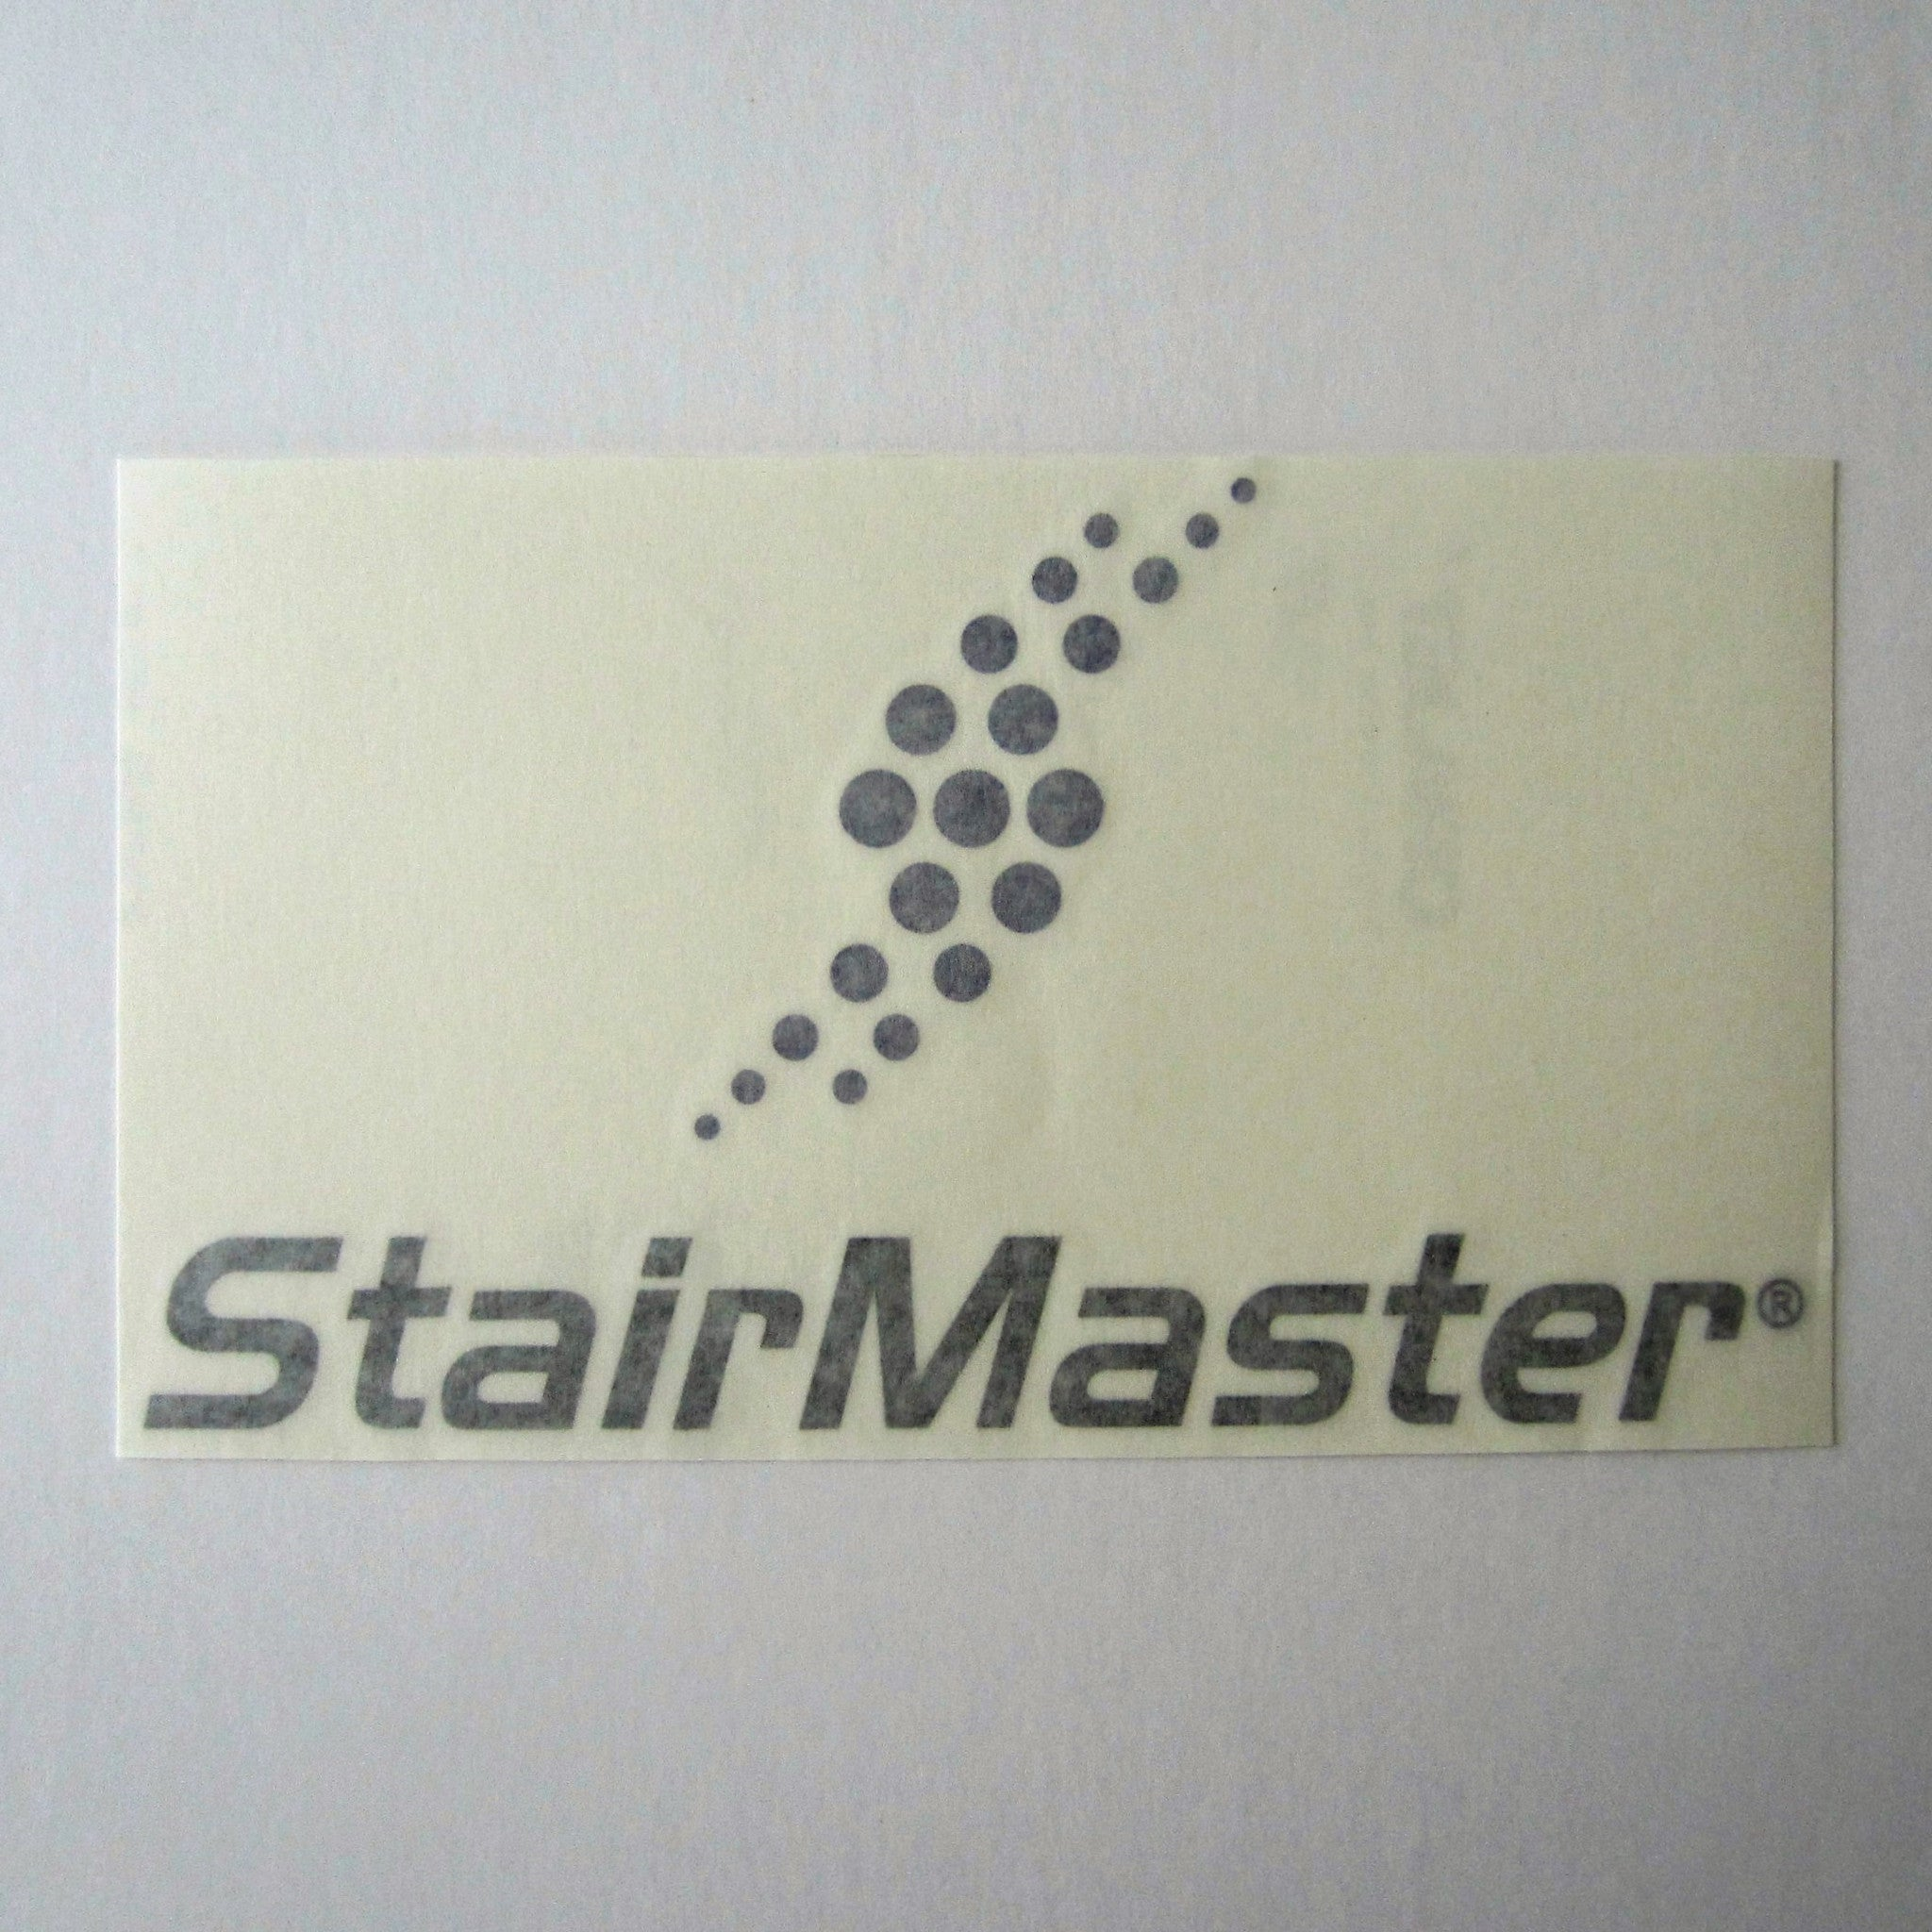 StairMaster SM5 Upper Shroud Decals (Set of 2)